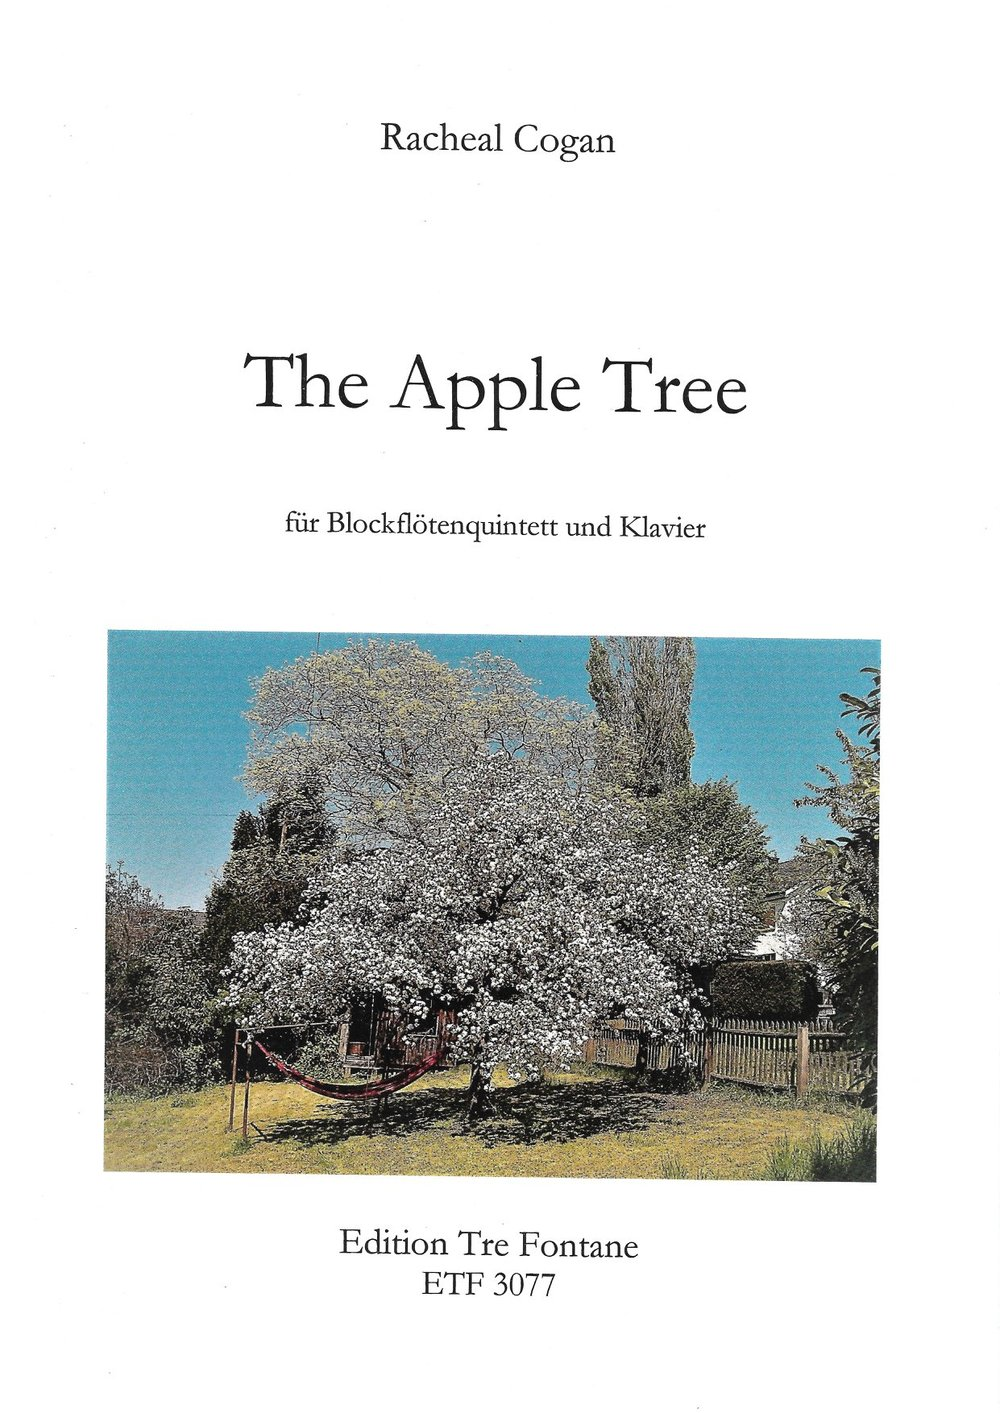 THE APPLE TREE Recorder Quintet and piano (2018). Score available from Edition Tre Fontane (ETF 3077).